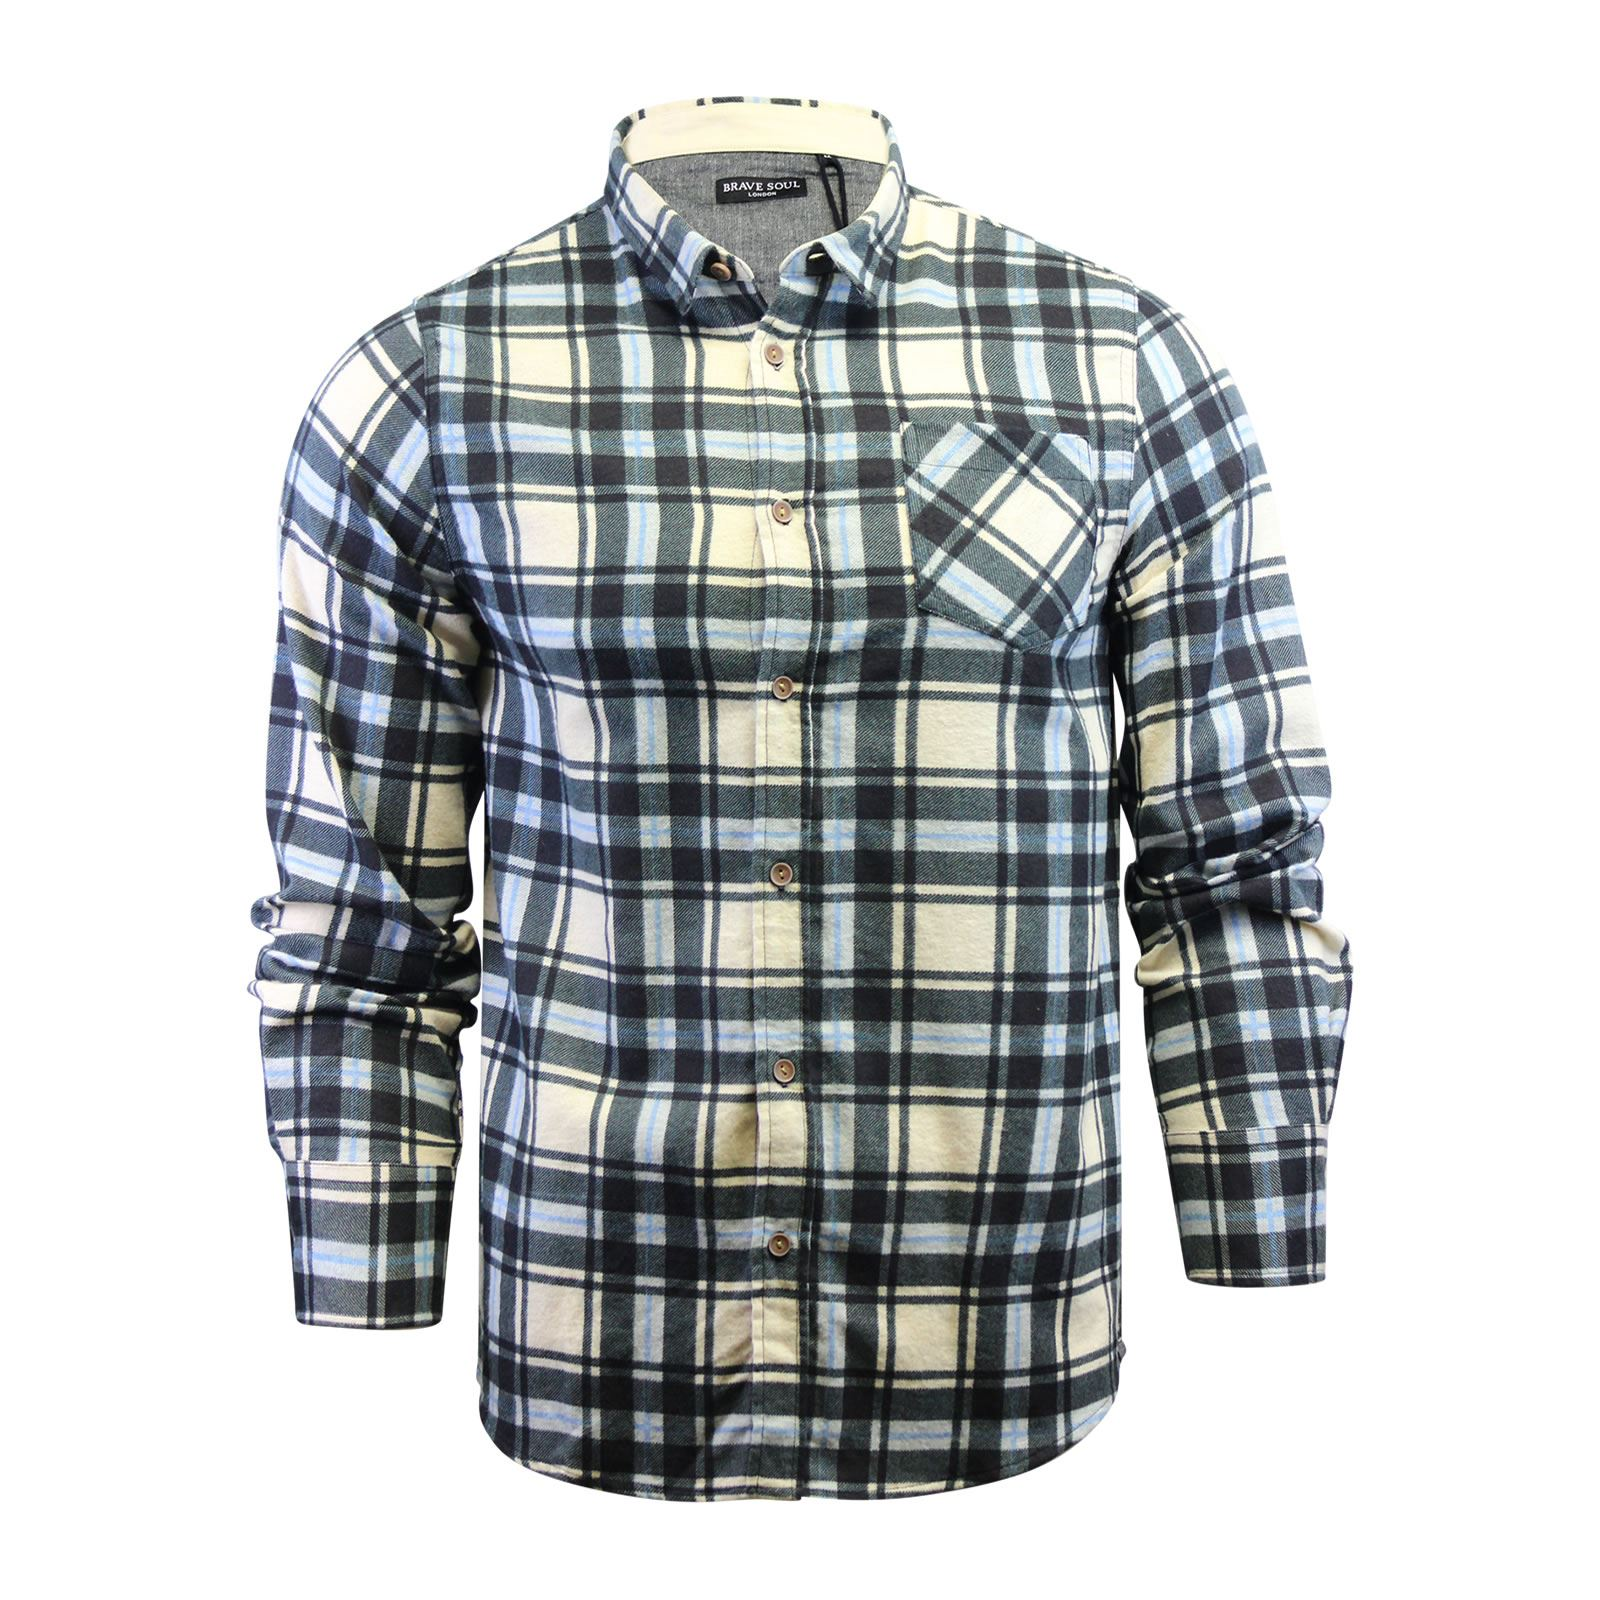 Brave-Soul-Mens-Check-Shirt-Flannel-Brushed-Cotton-Long-Sleeve-Casual-Top thumbnail 27